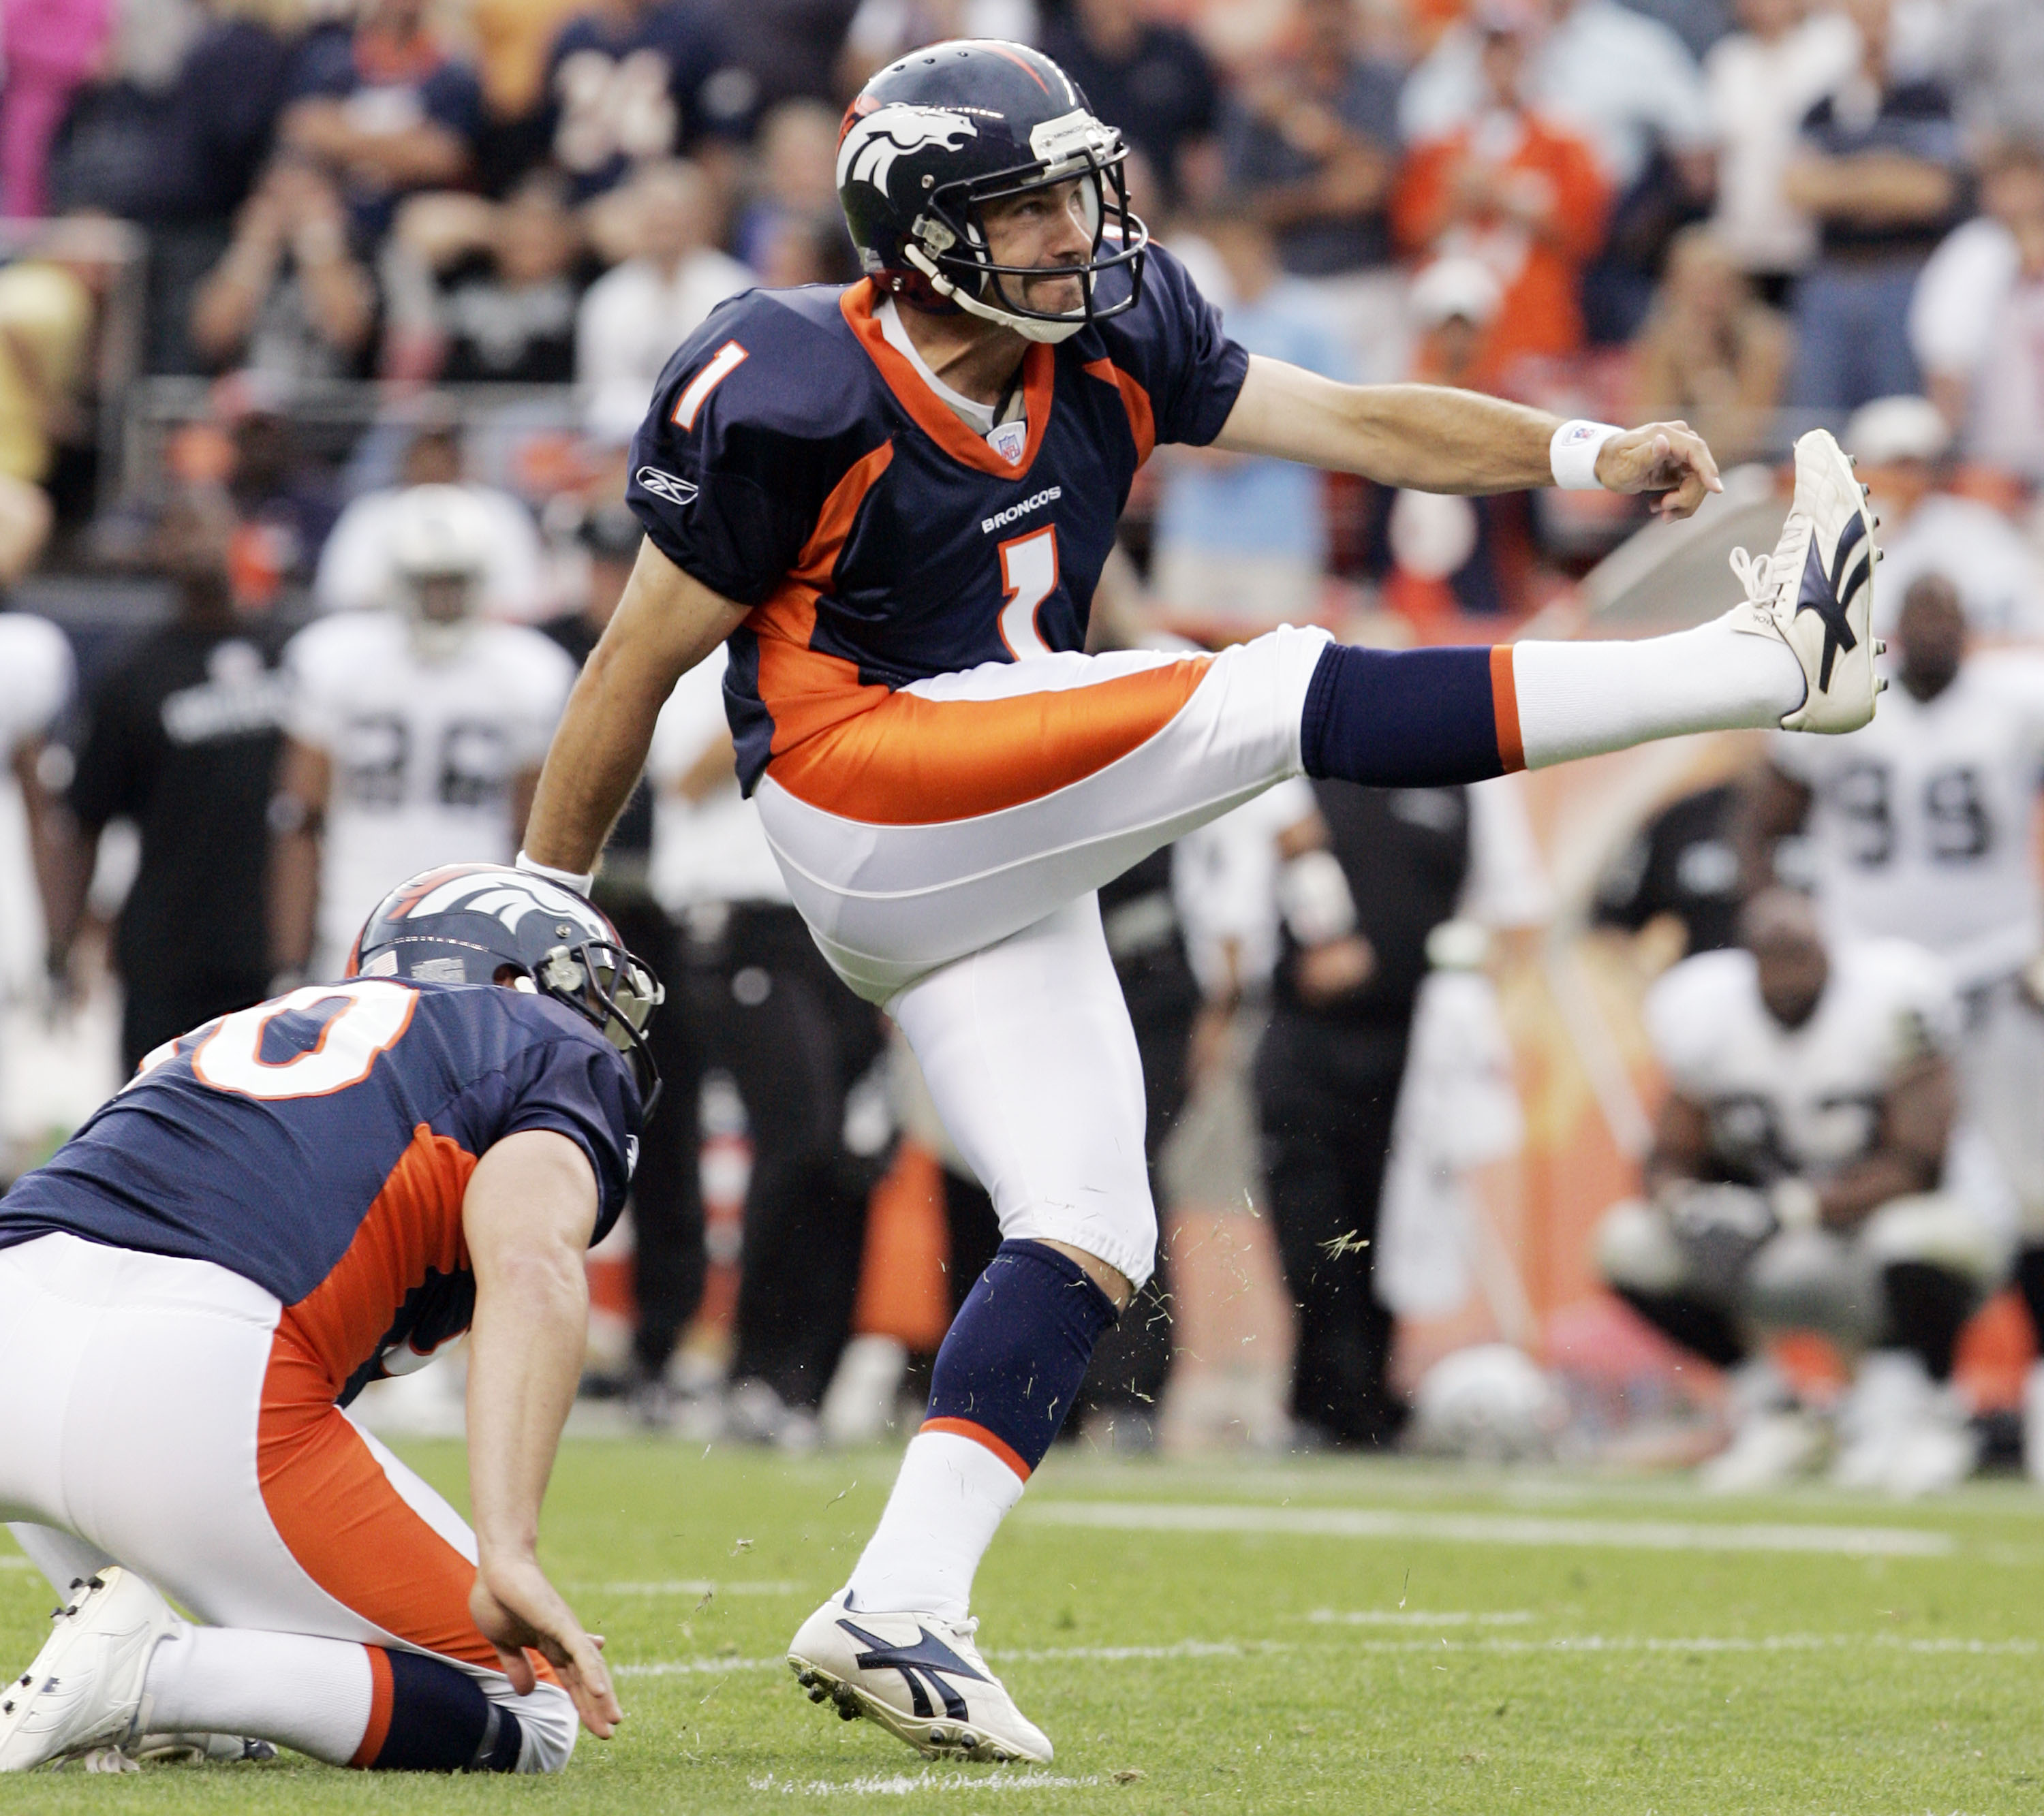 FILE - In this Sunday, Sept. 16, 2007 file photo, Denver Broncos kicker Jason Elam (1) follows through as he kicks the game-winning field goal in overtime against the Oakland Raiders during a football game in Denver. A trio of former players is heading in